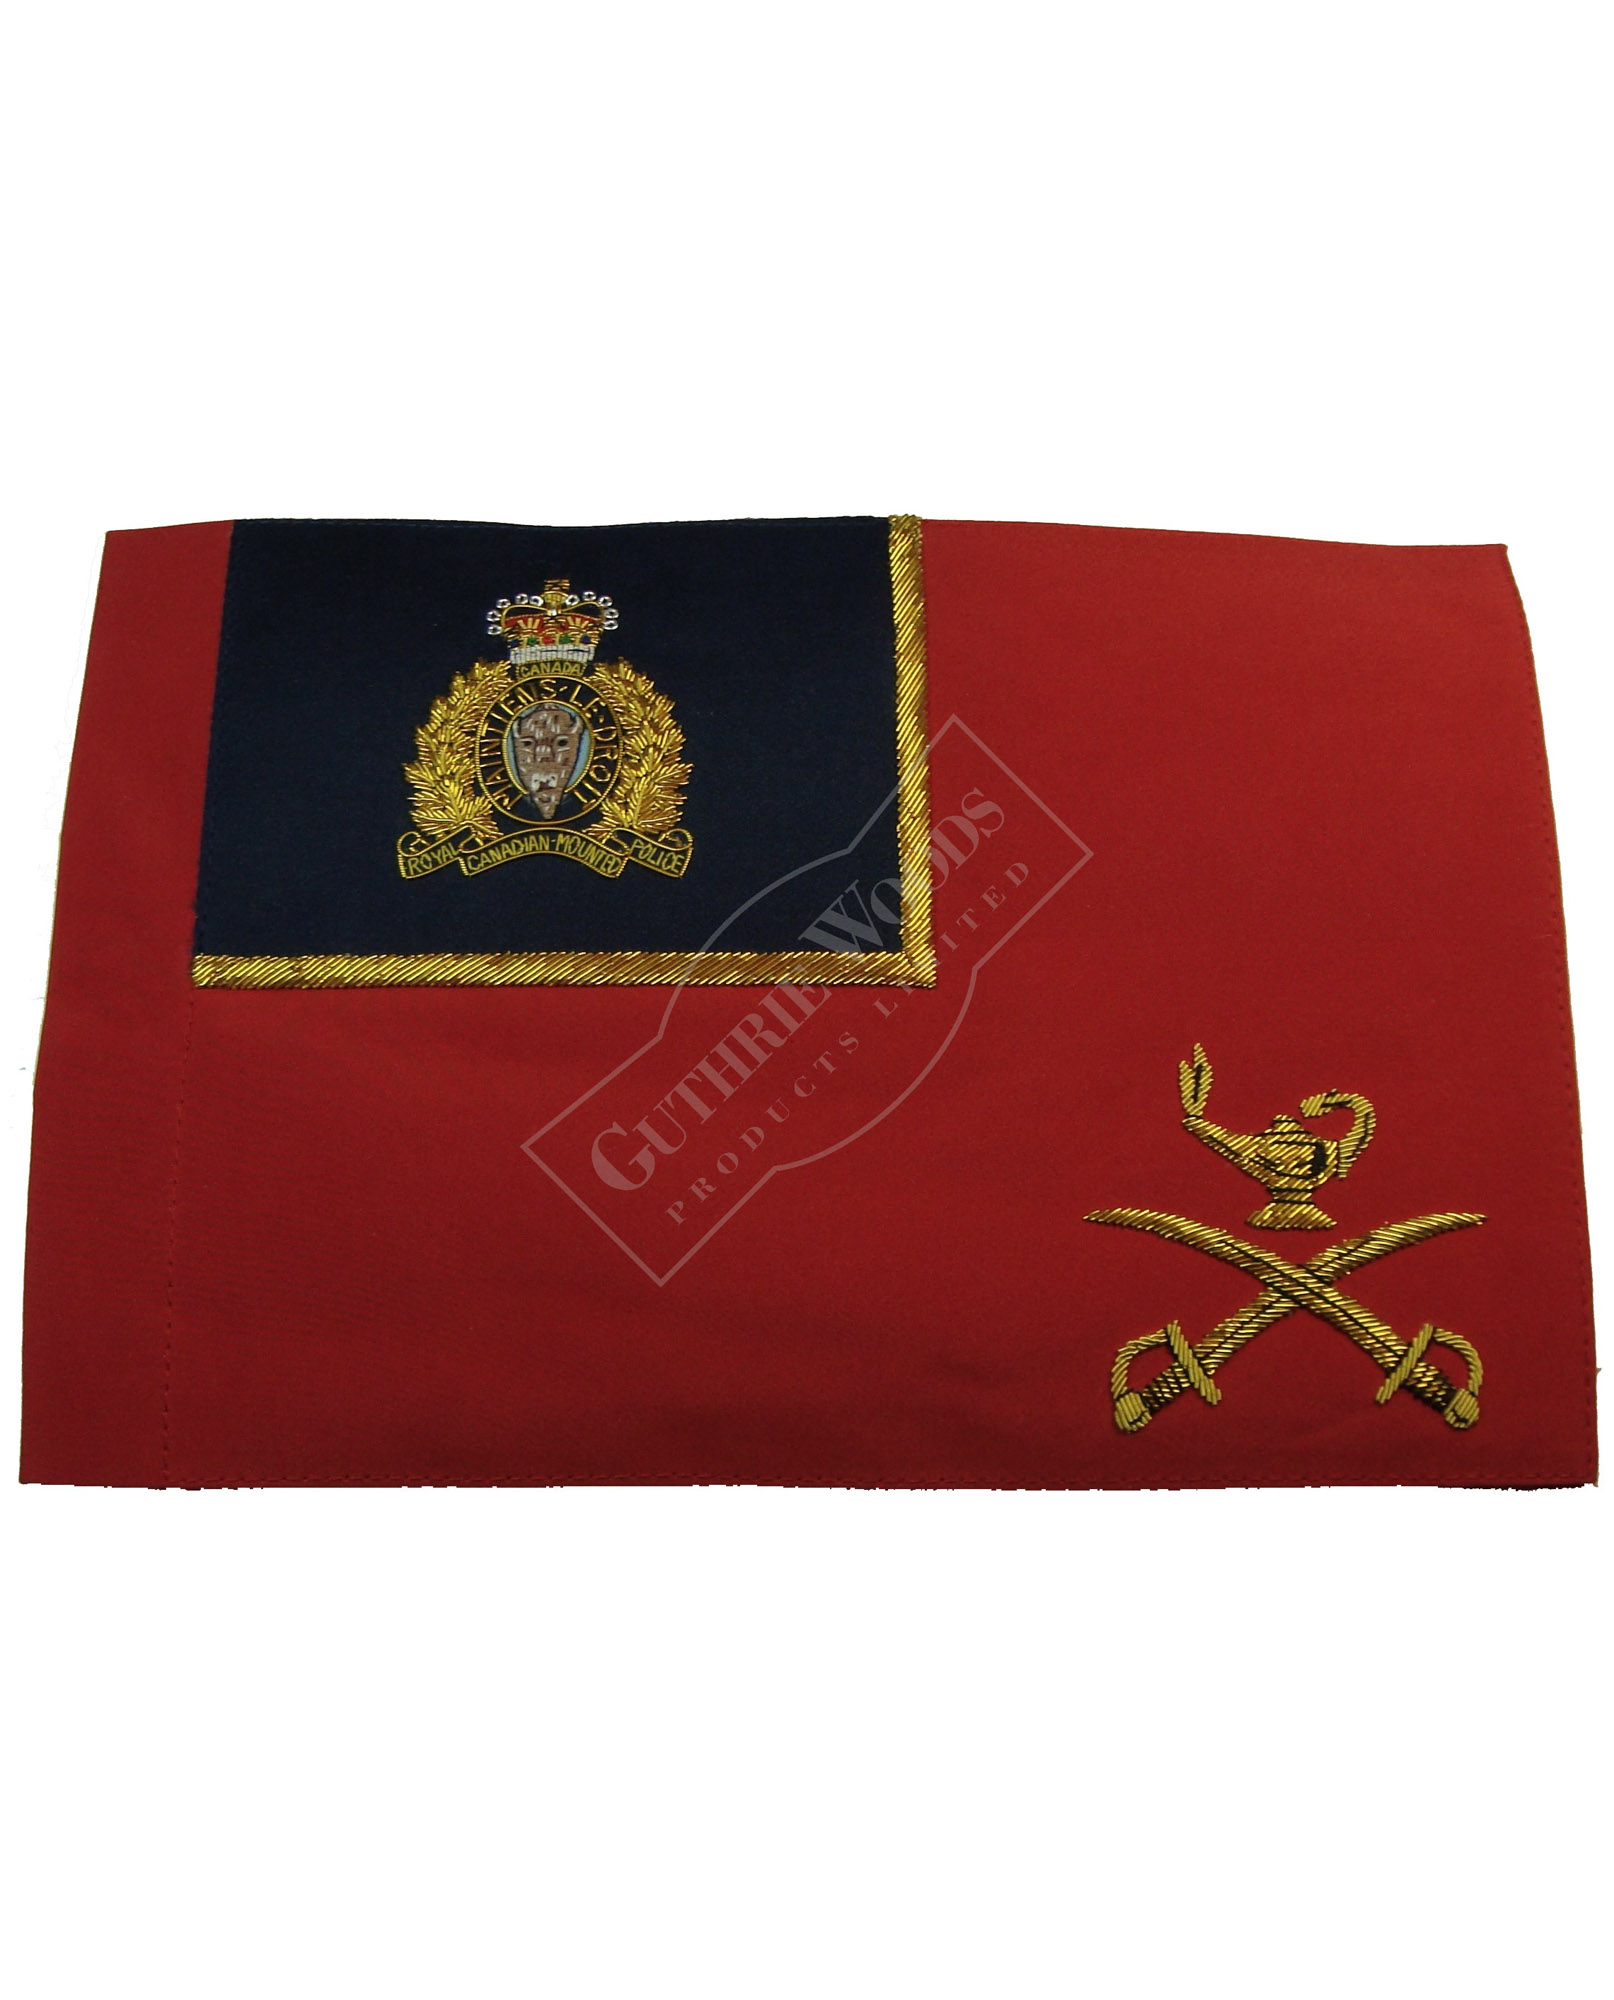 RCMP Miniature Division Ensign R173-DEPOT